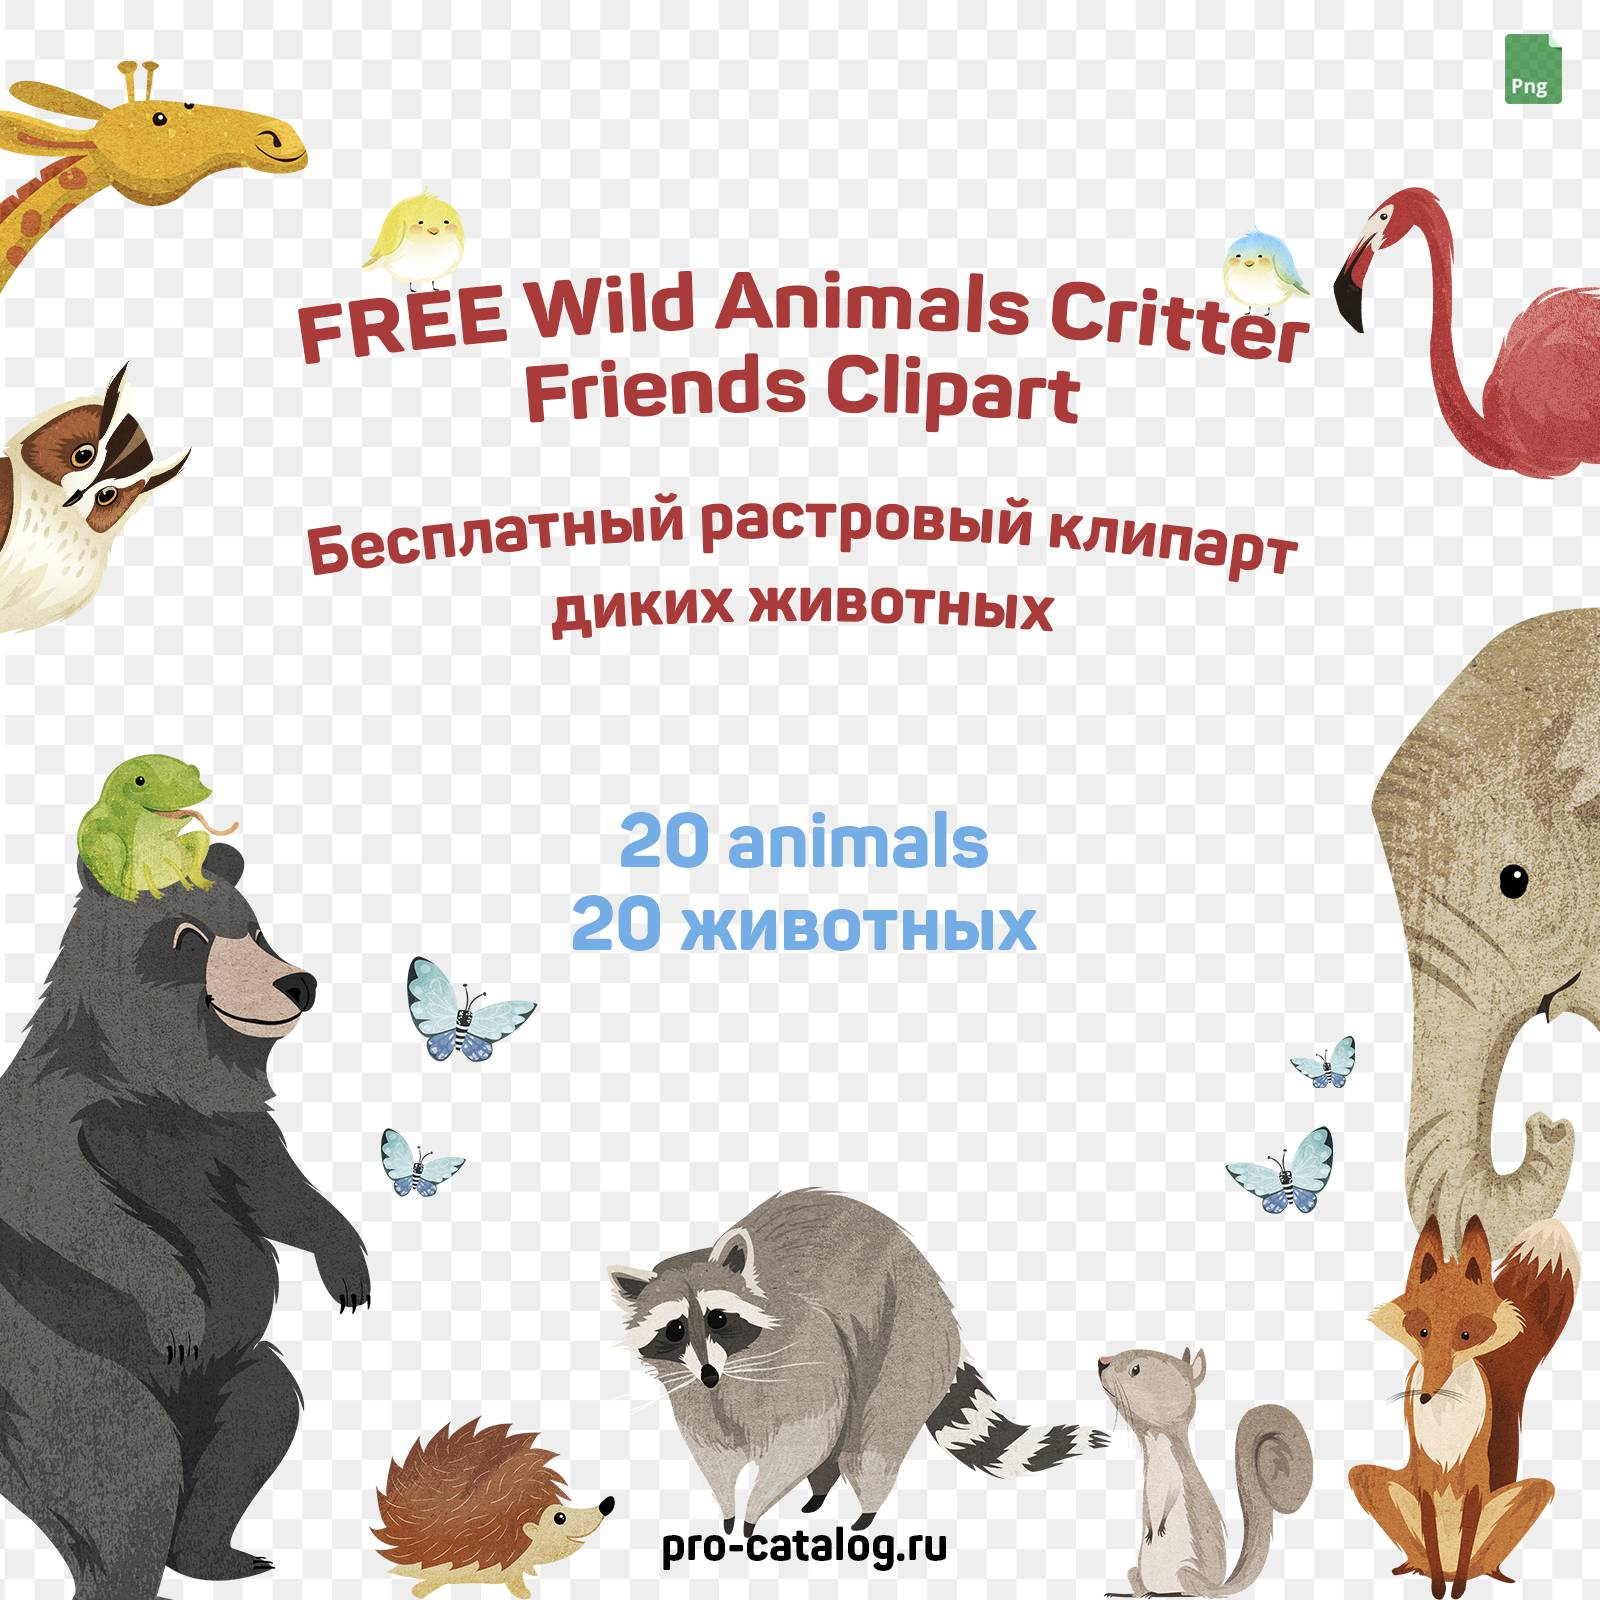 FREE Wild Animals Critter Friends Clipart